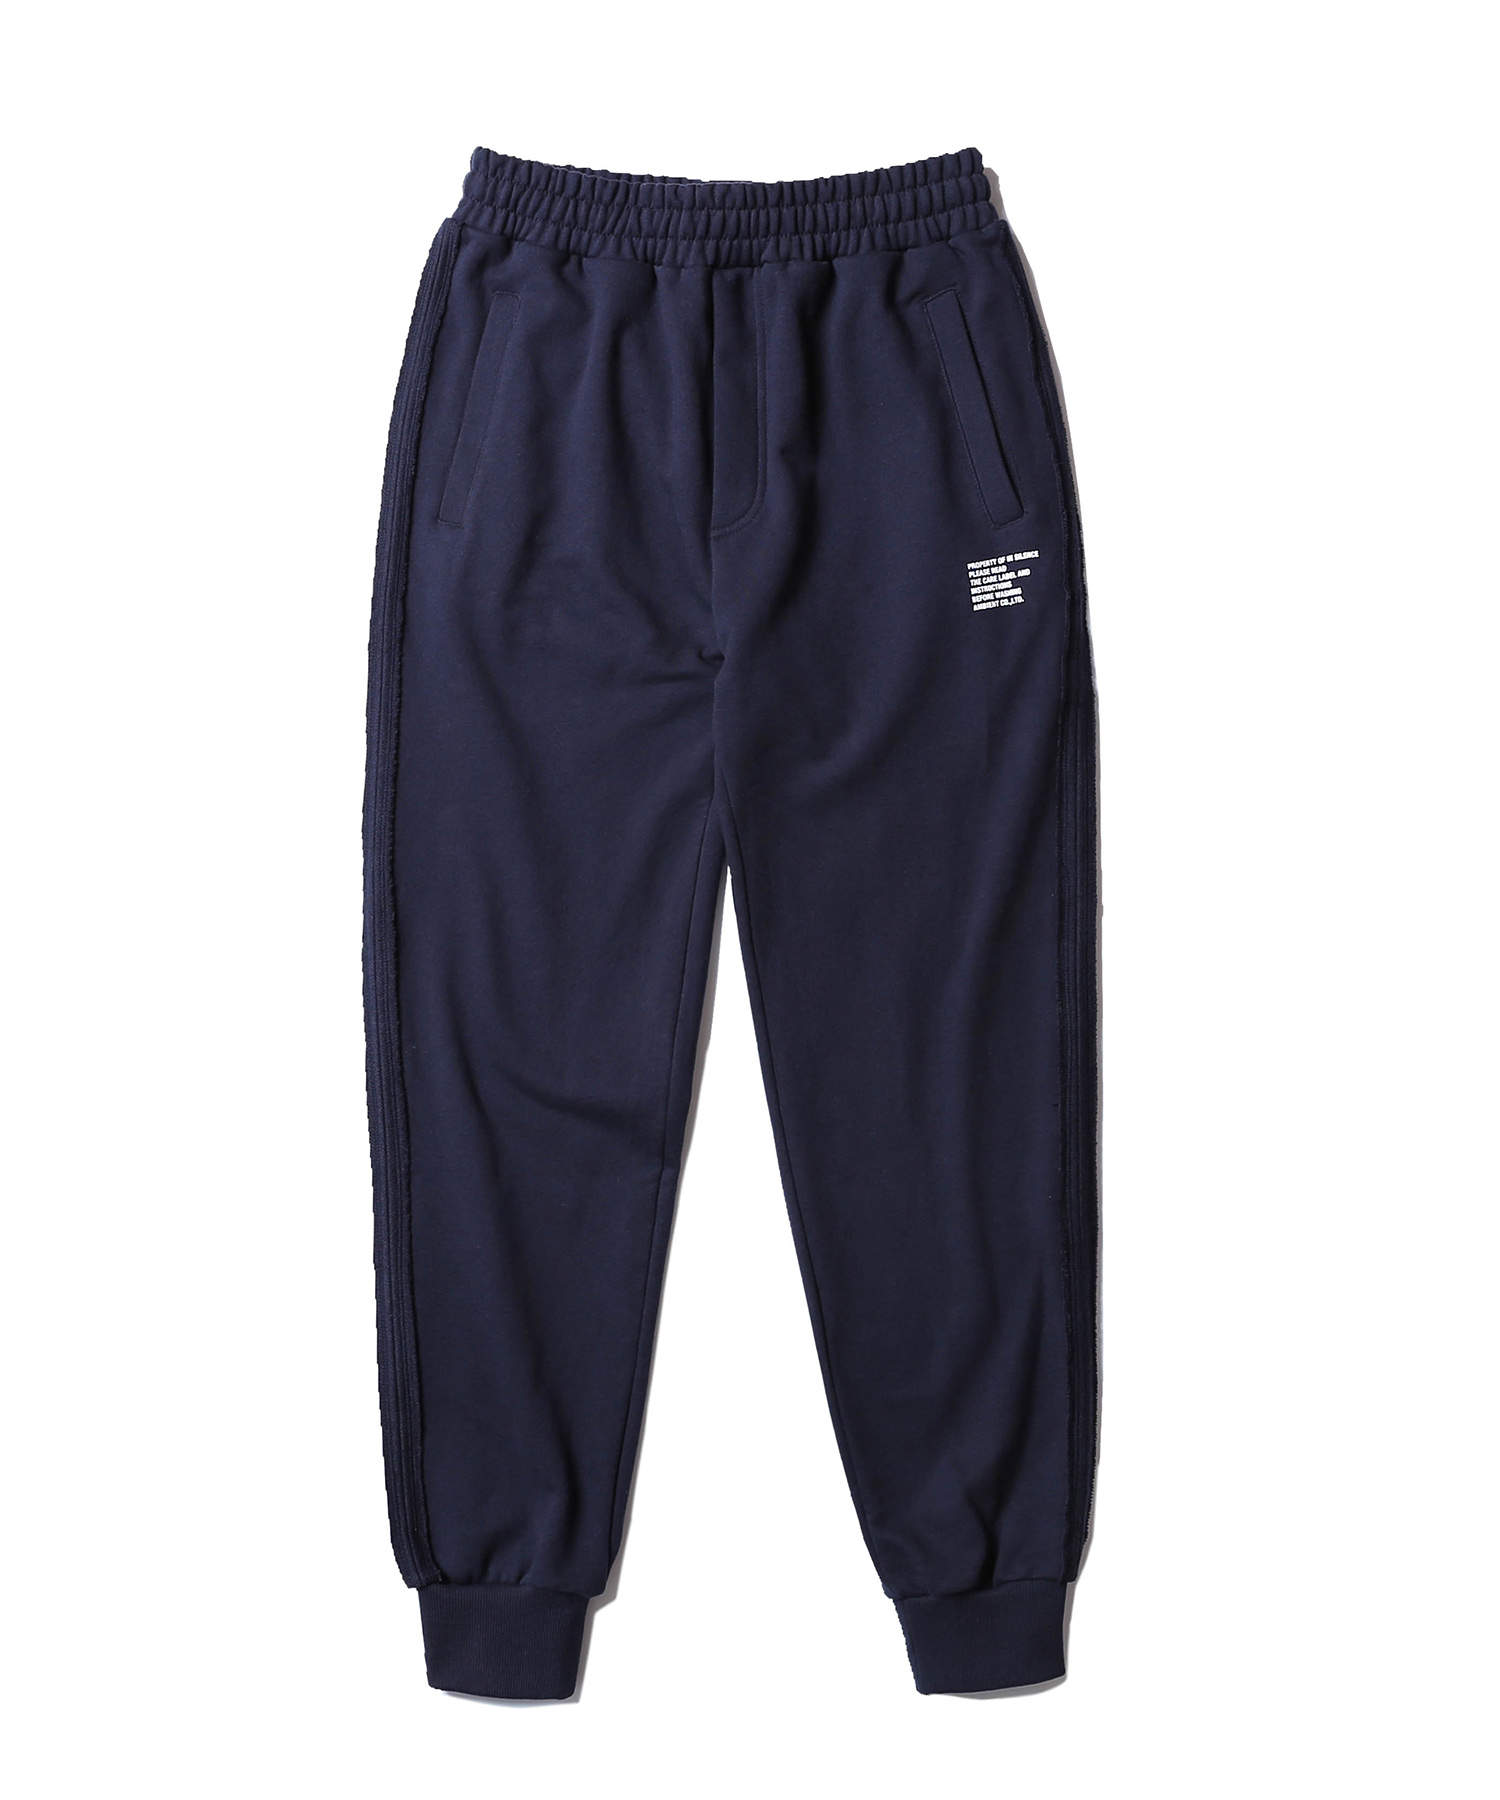 SL Jogger Pants (Navy)